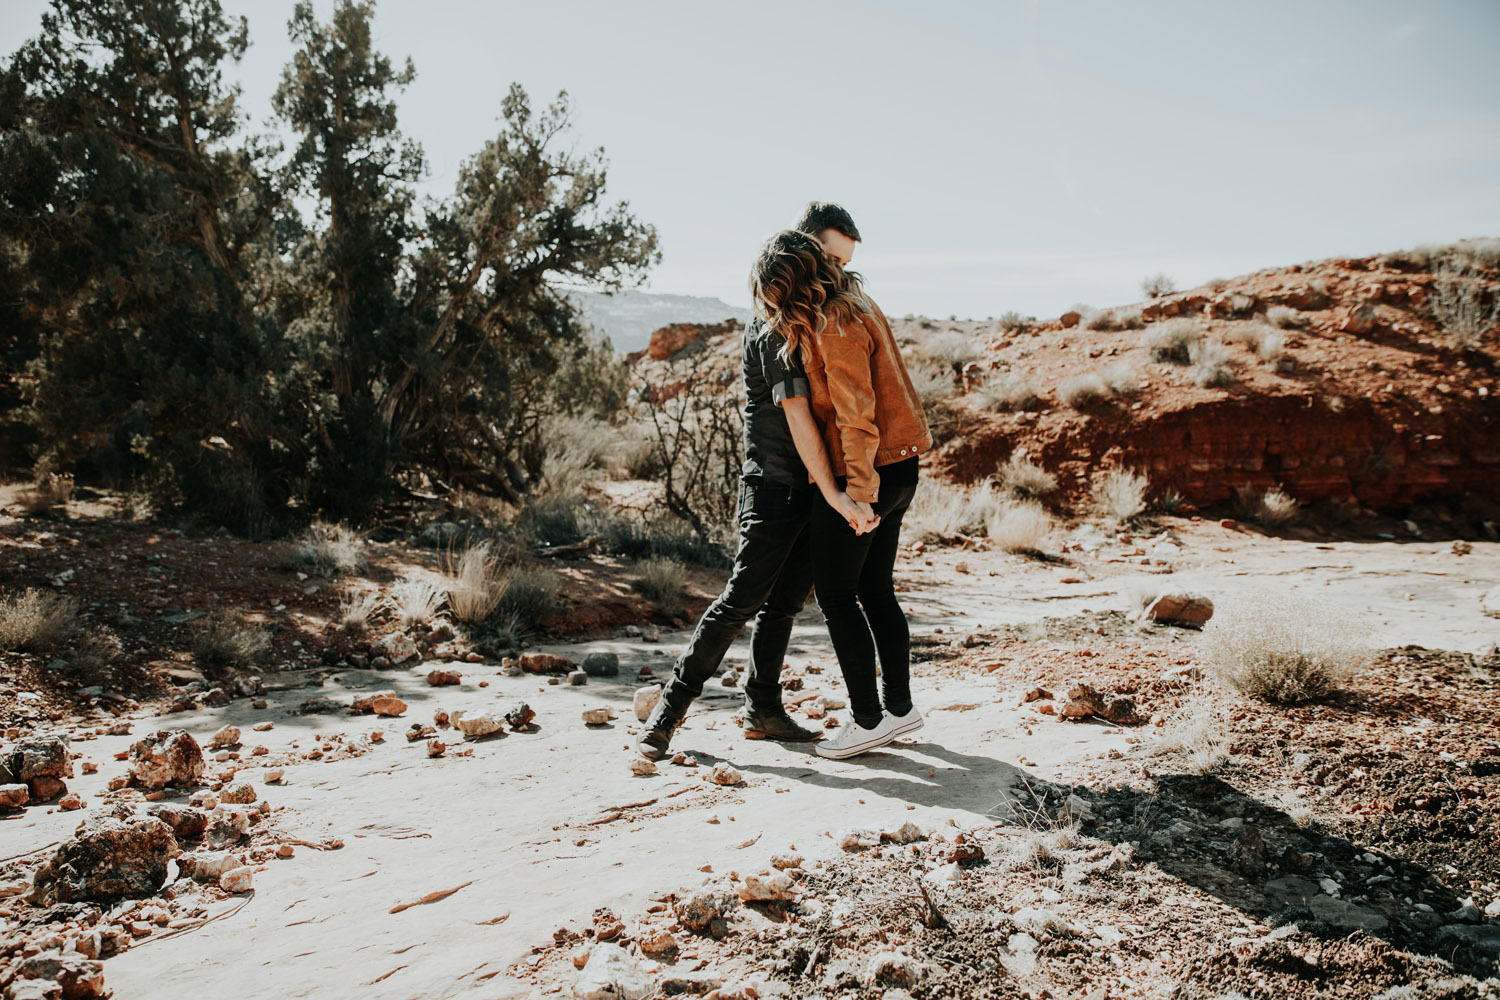 destination wedding photographers atlanta elopement photographer utah engagement photography atalie ann photo _1016.jpg